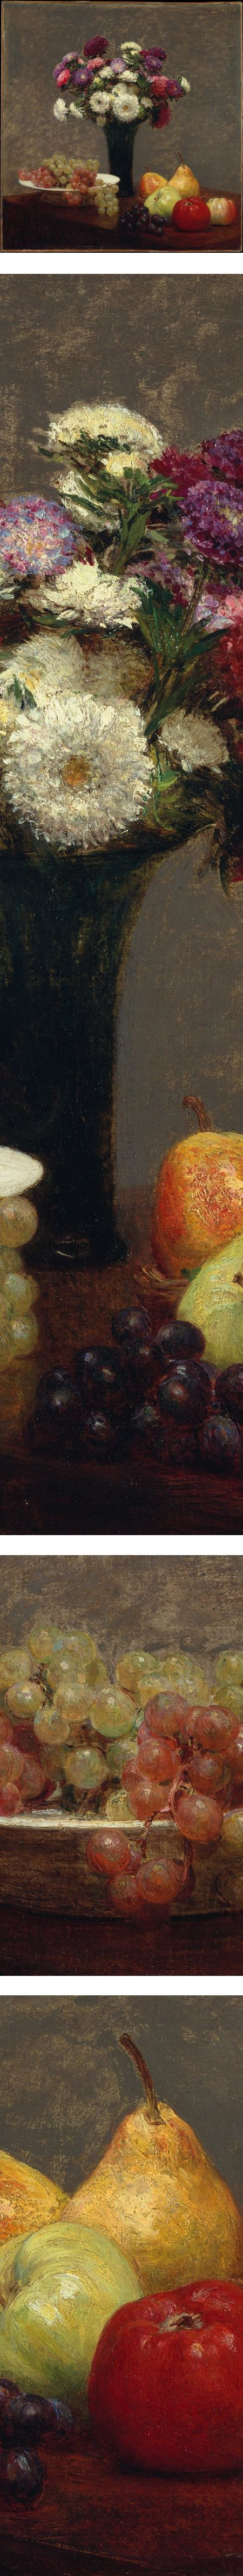 Asters and Fruit on a Table, Henri Fantin-Latour